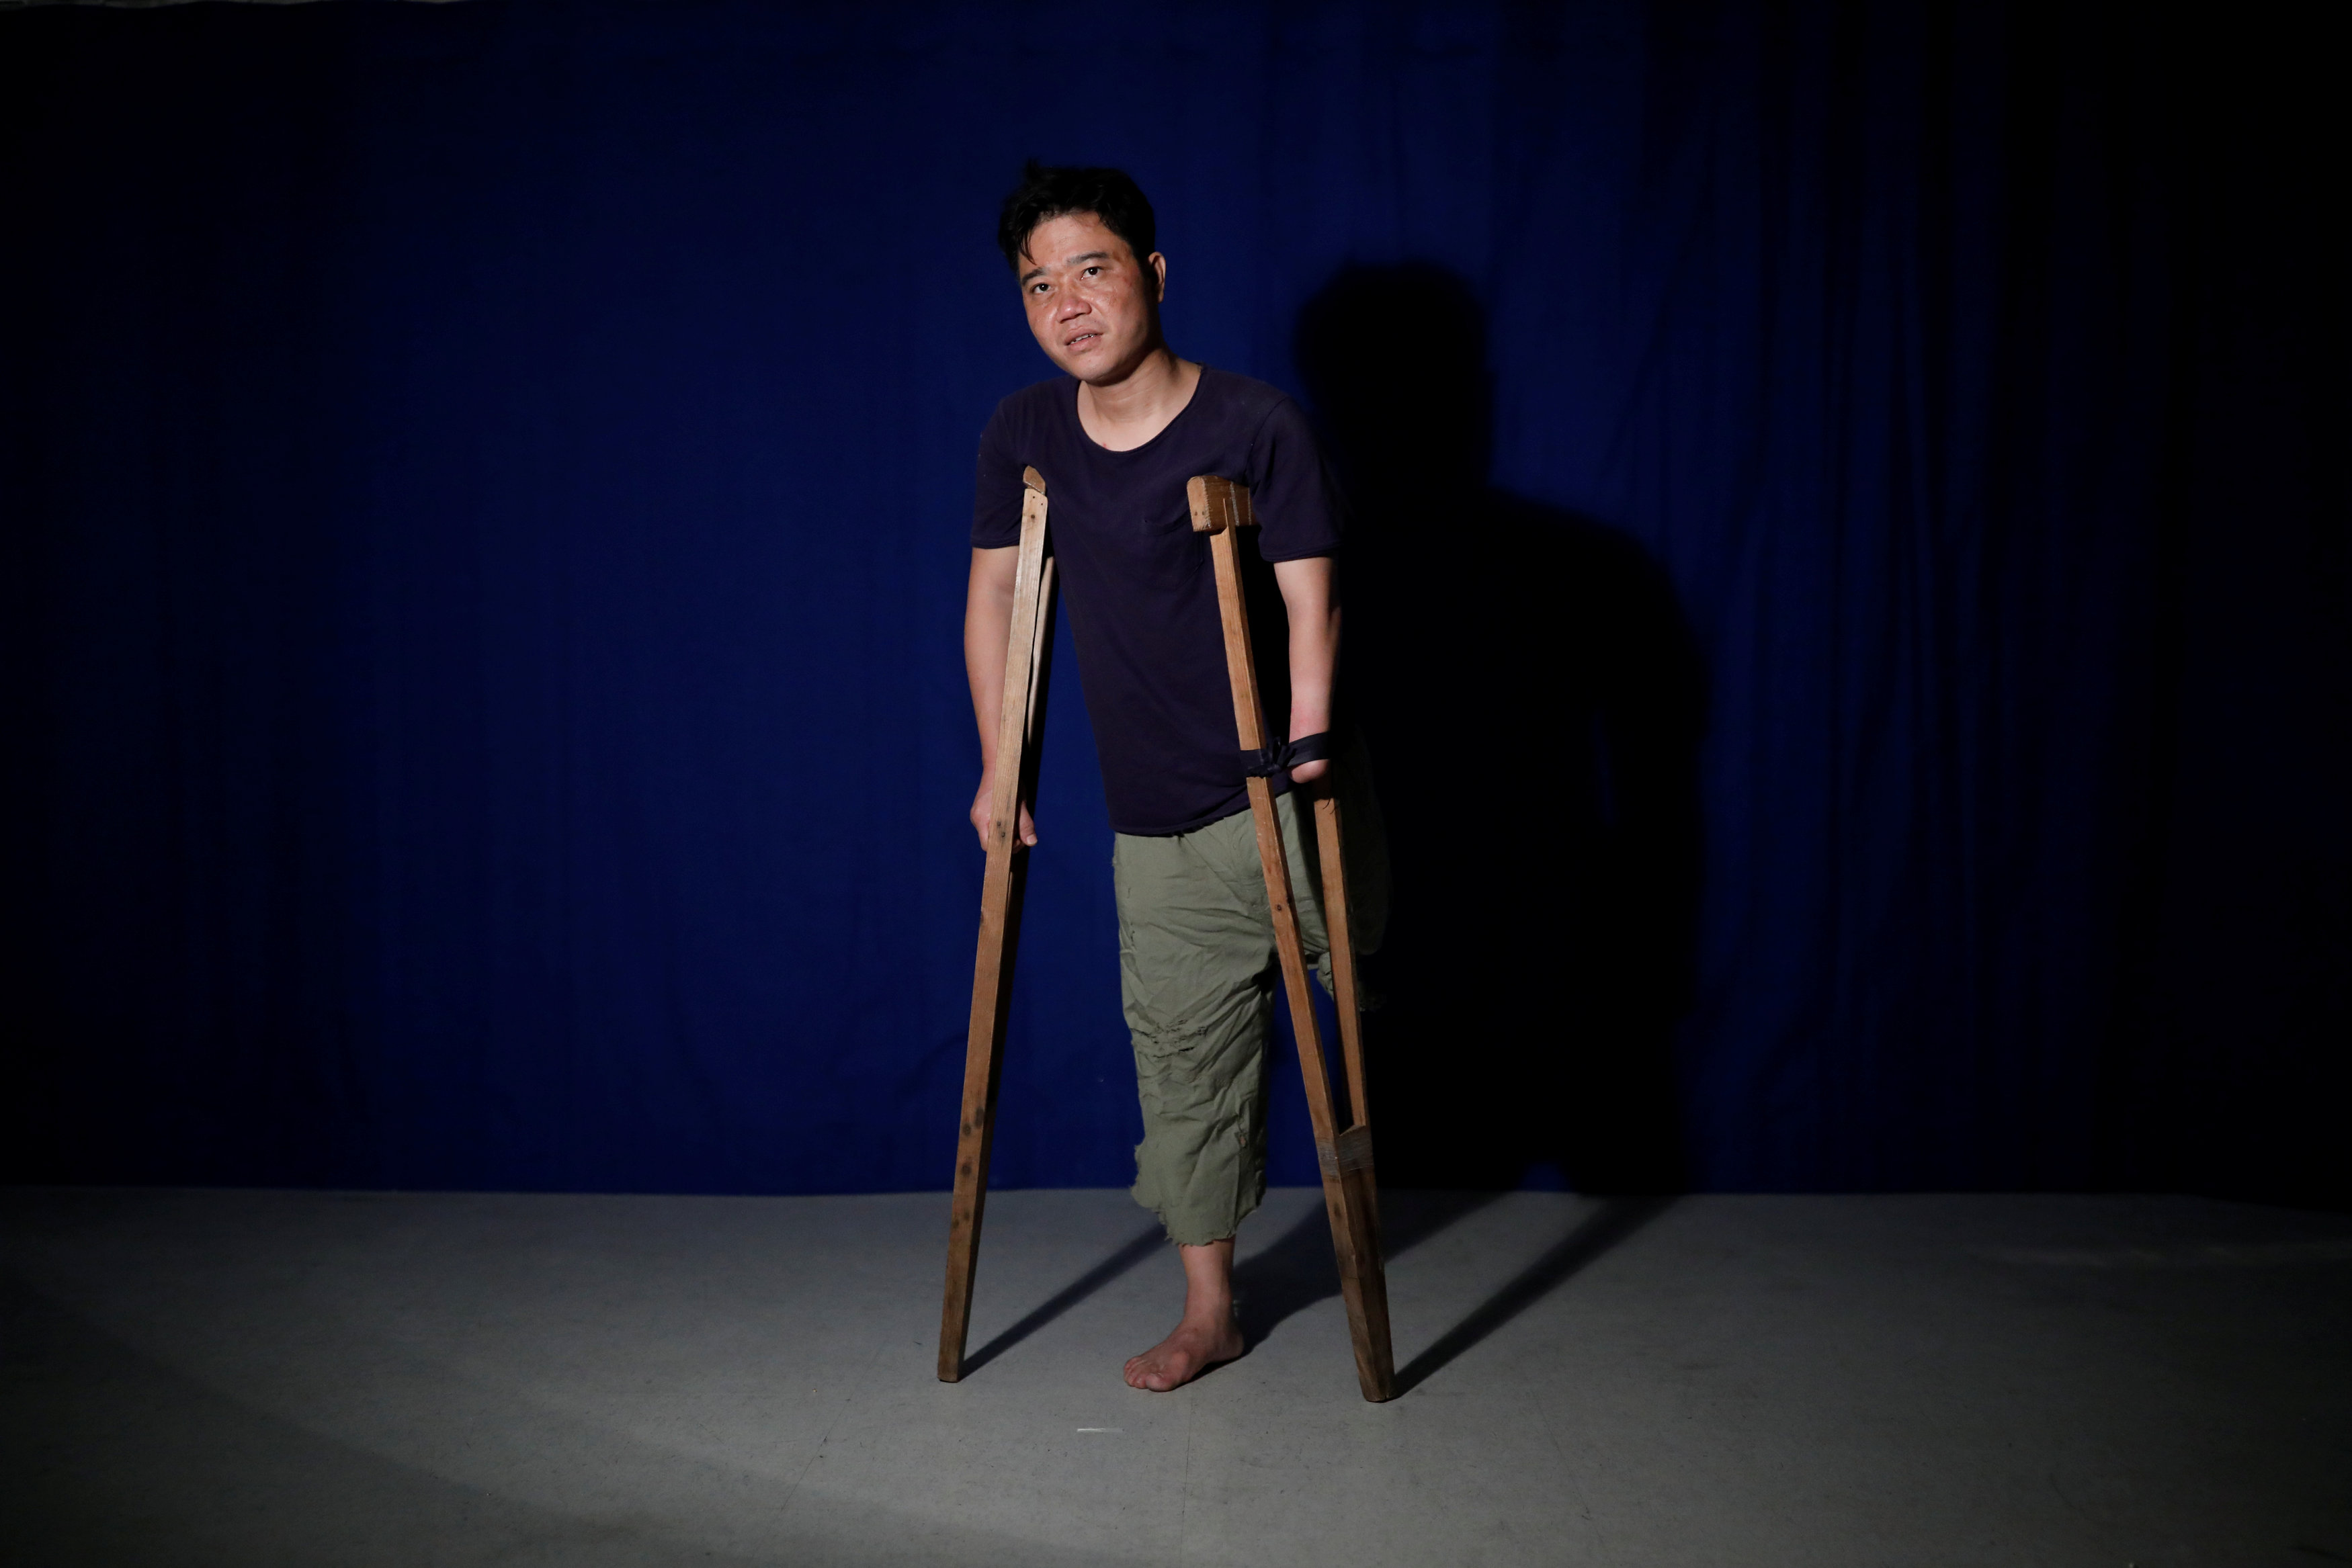 North Korea Defected >> Me and my crutches - a North Korean defector's story